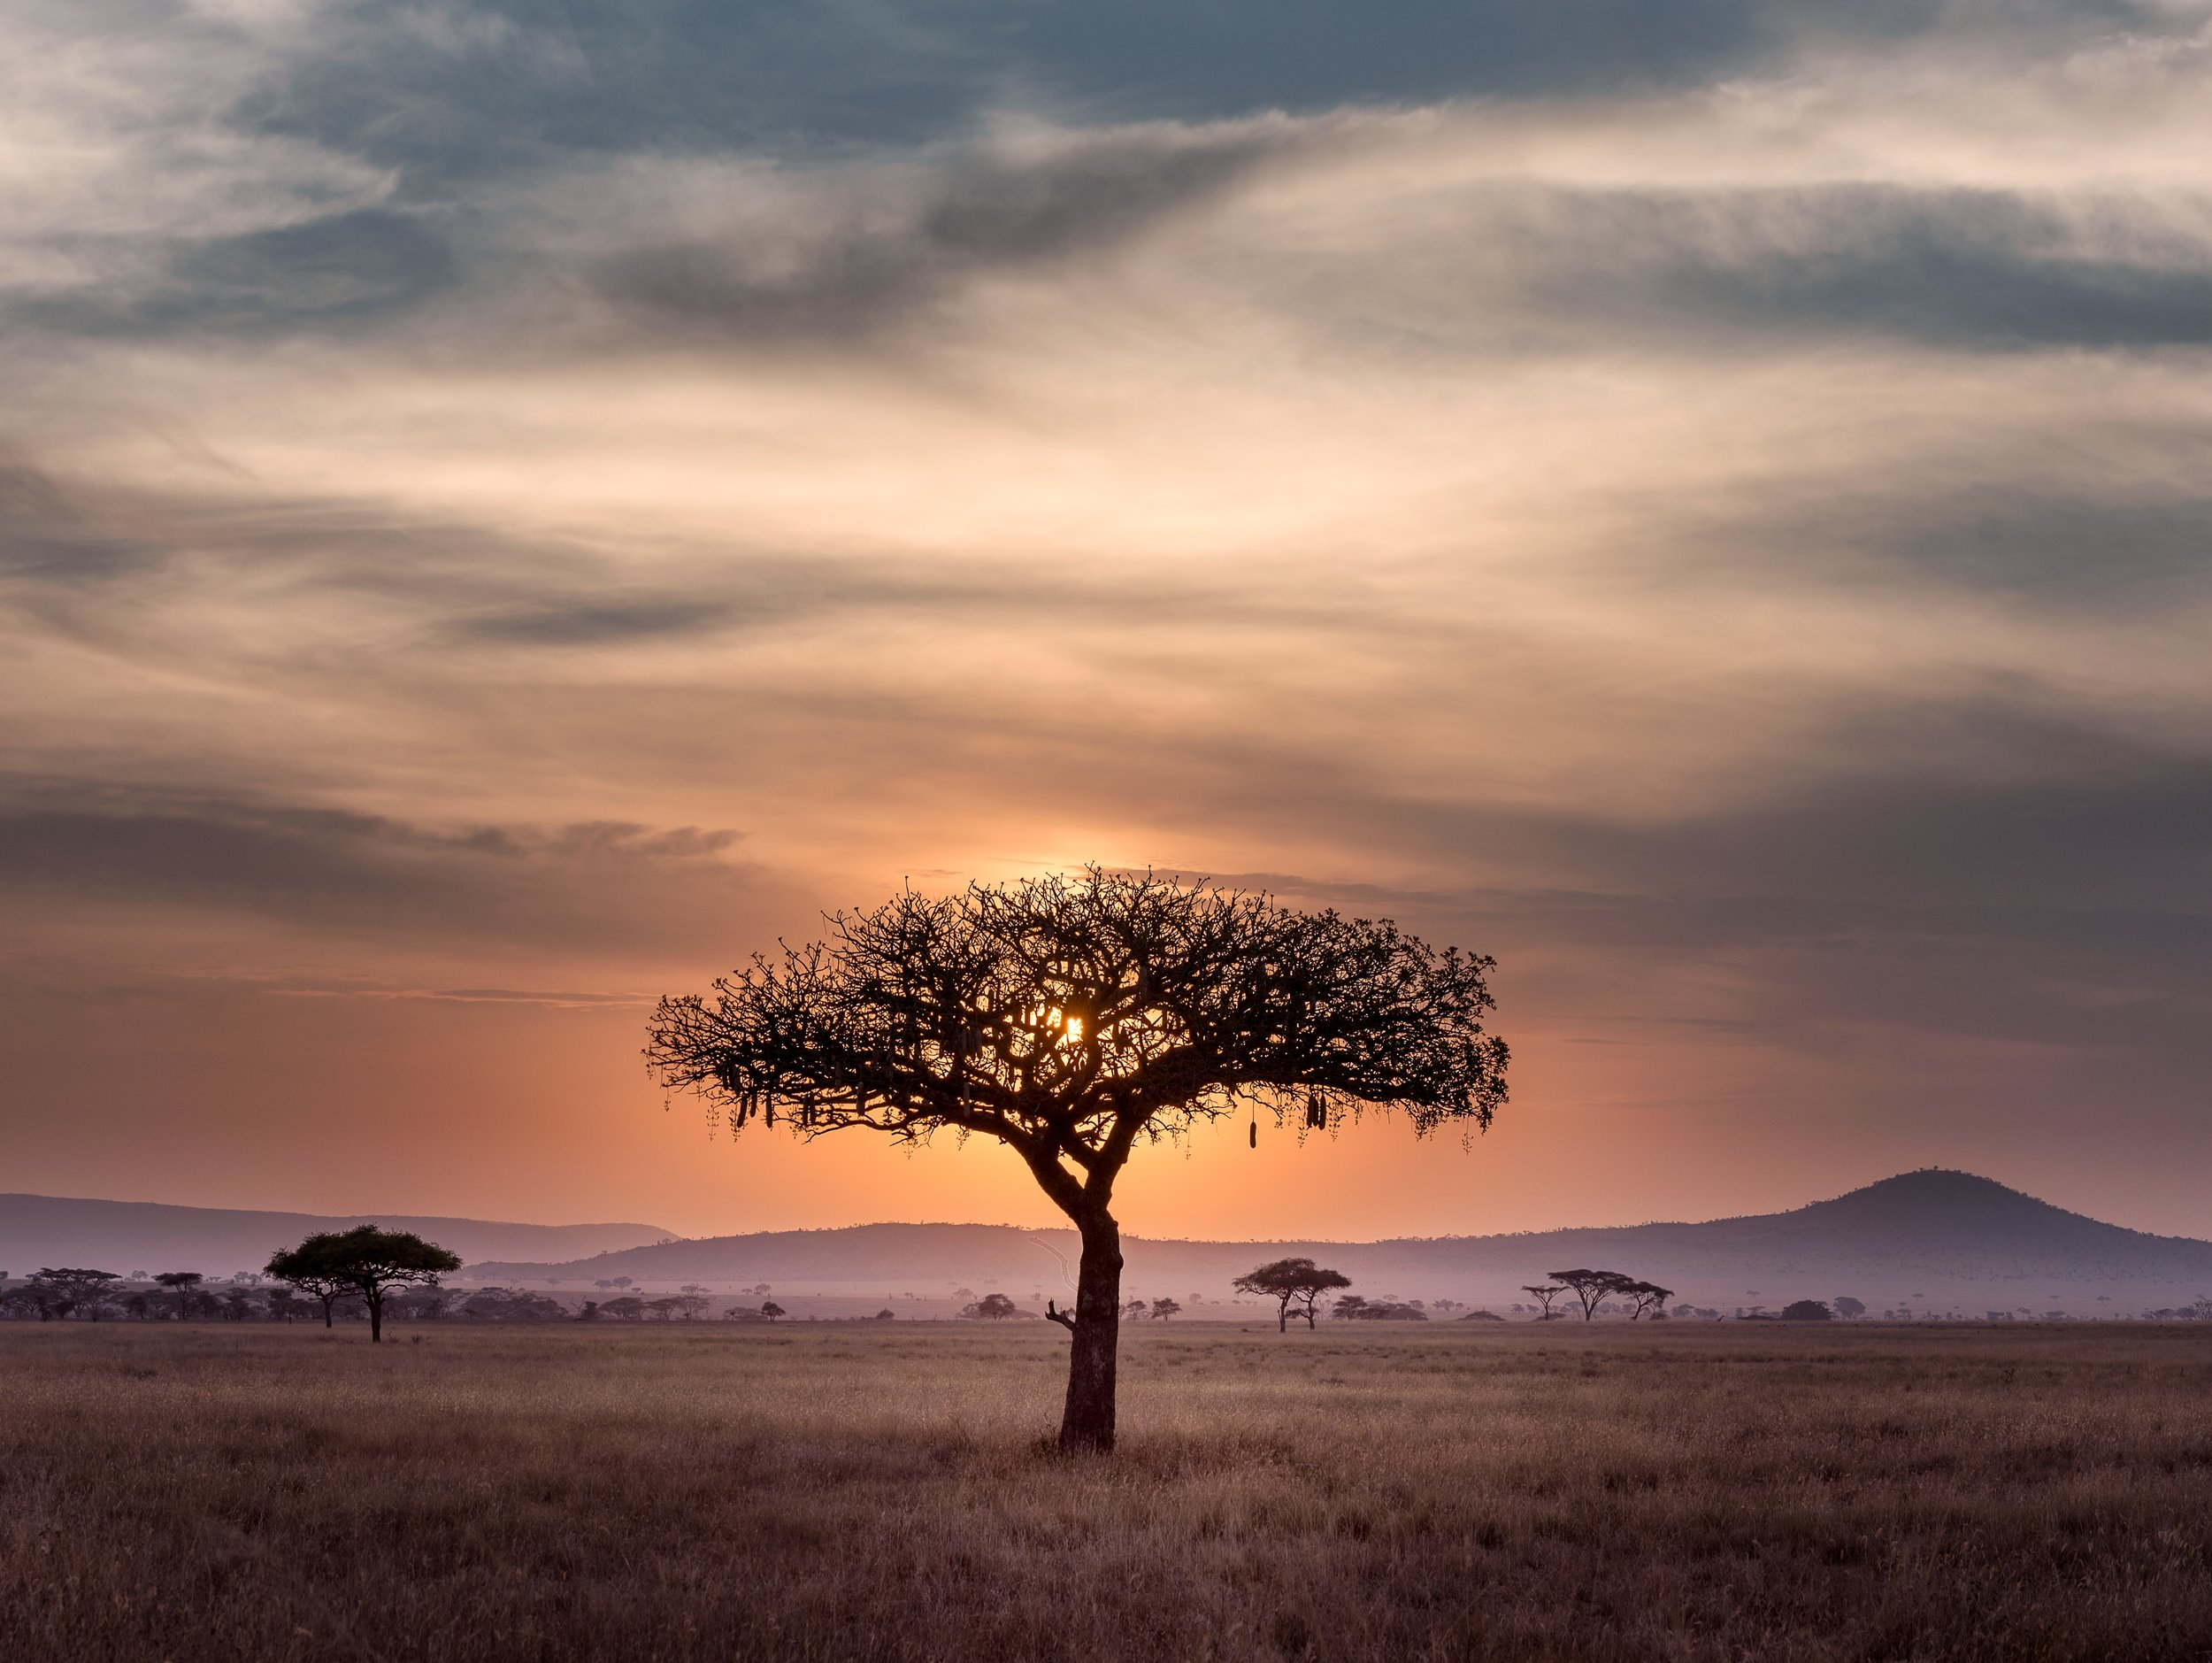 Own a piece of the Mara - Discover our hotel portfolio currently accepting offers for investment or outright purchase in some of the world's most awe-inspiring destinations.